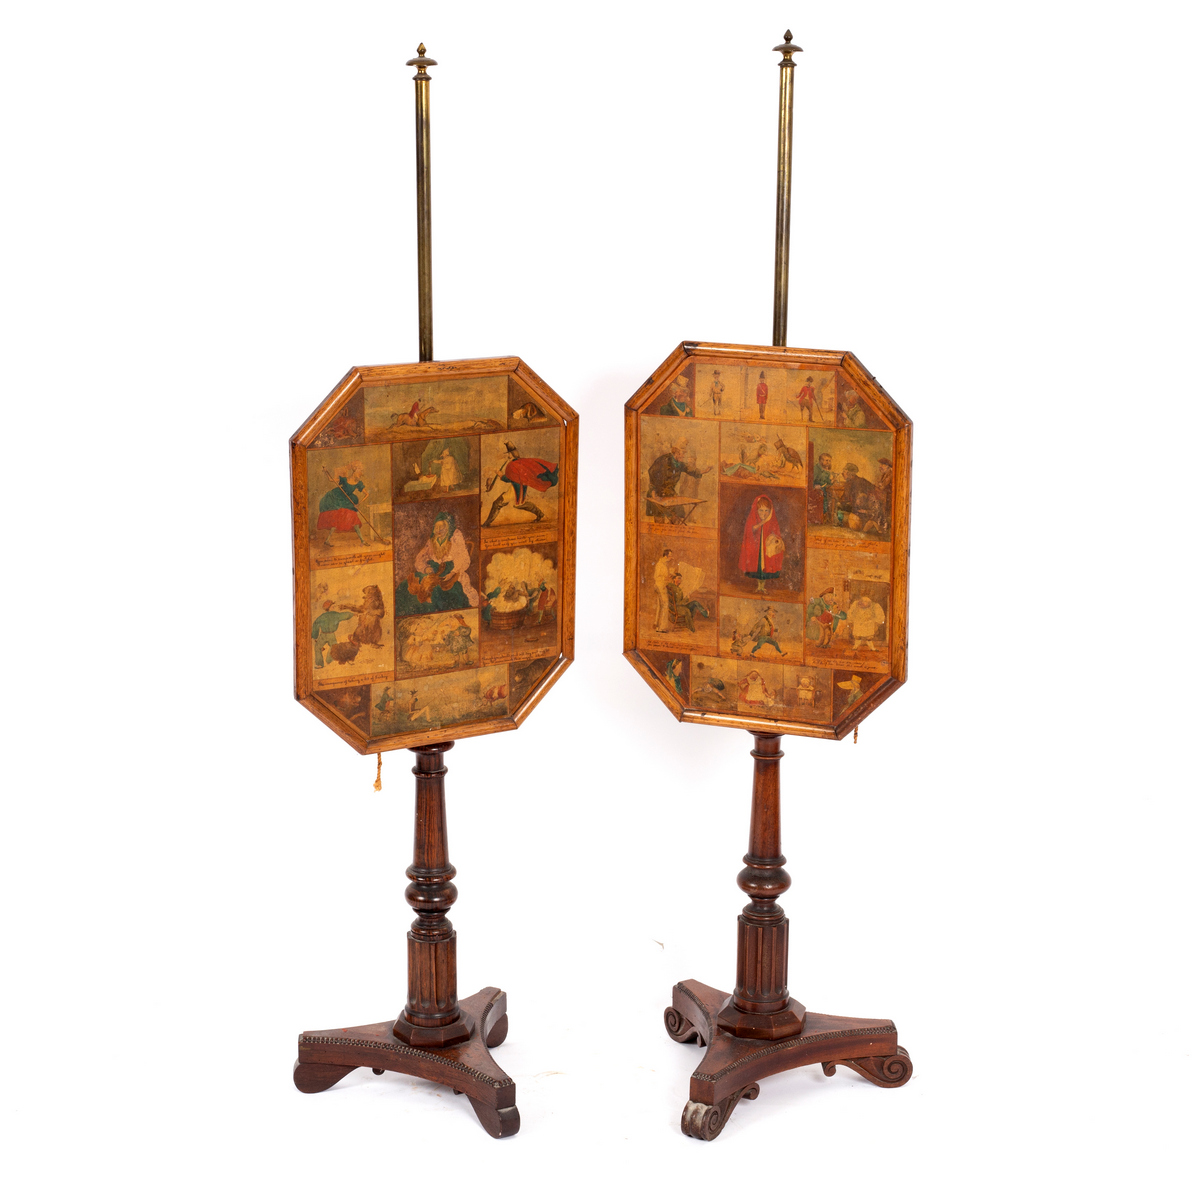 Lot 647 - A pair of William IV simulated rosewood pole screens,